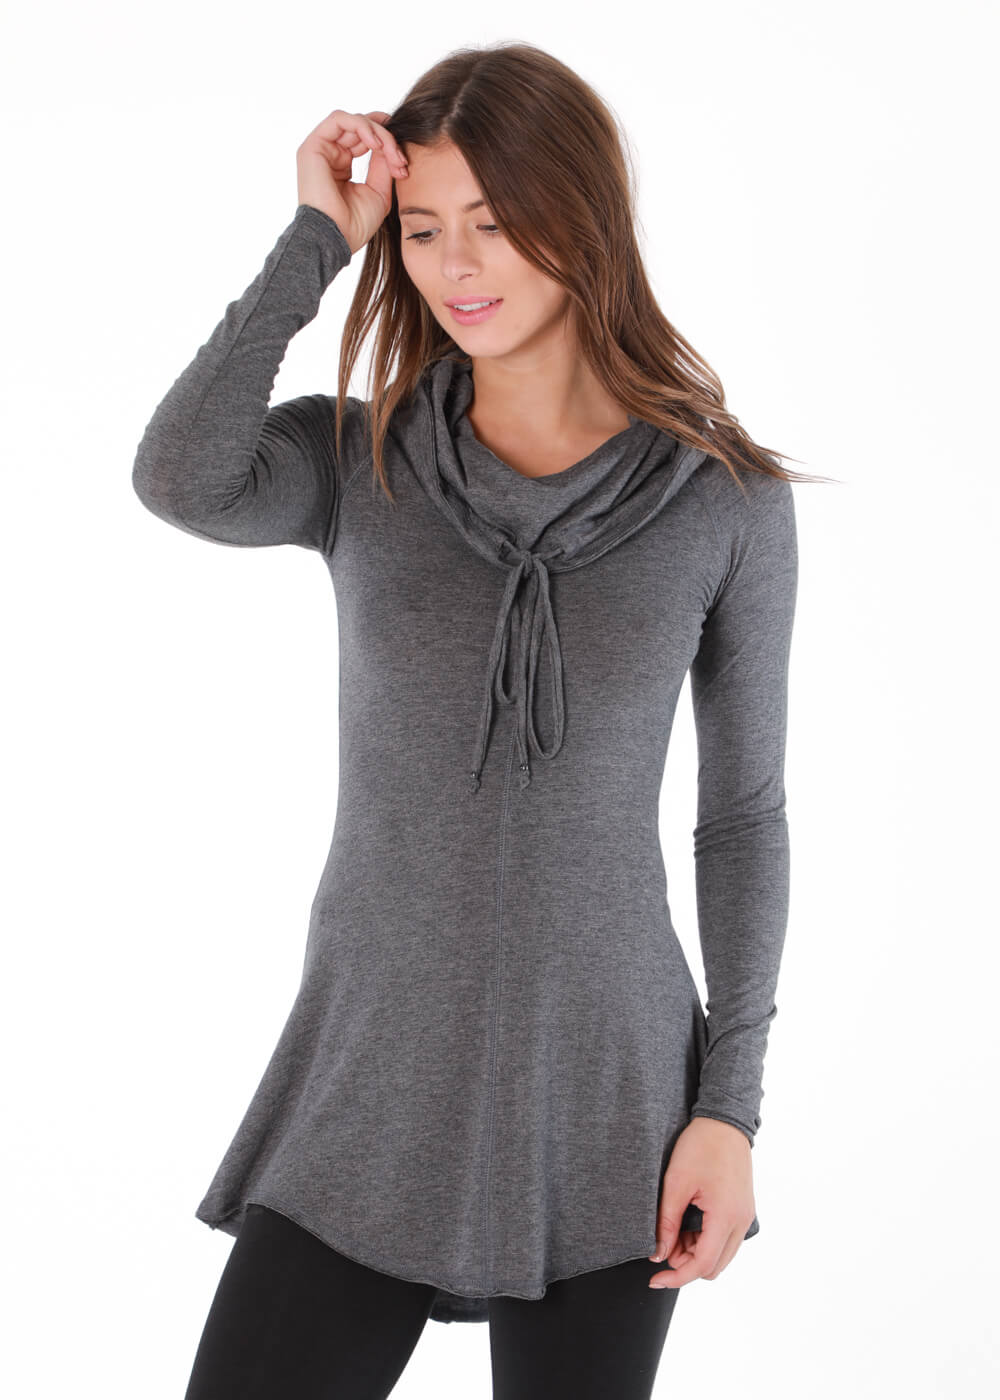 c0663d92549e54 Prophecy Tunic in Organic Cotton & Bamboo - Nomads Hemp Wear